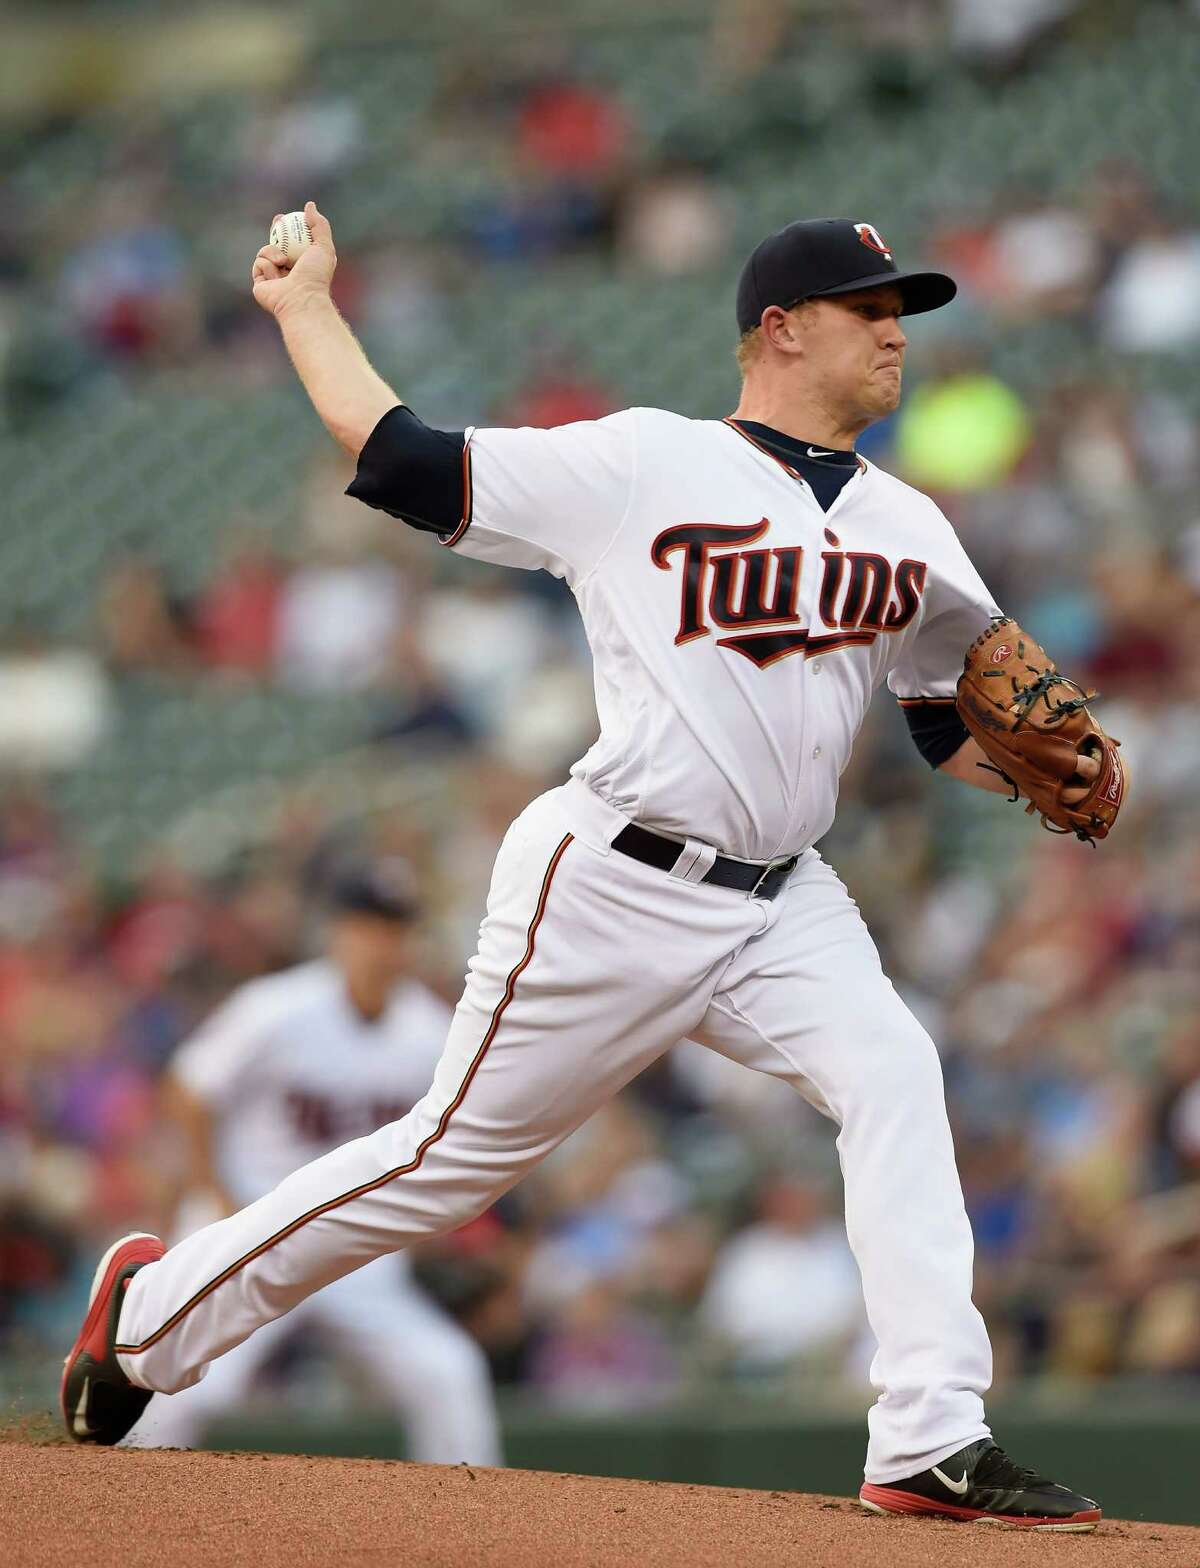 MINNEAPOLIS, MN - AUGUST 08: Tyler Duffey #56 of the Minnesota Twins delivers a pitch against the Houston Astros during the first inning of the game on August 8, 2016 at Target Field in Minneapolis, Minnesota.